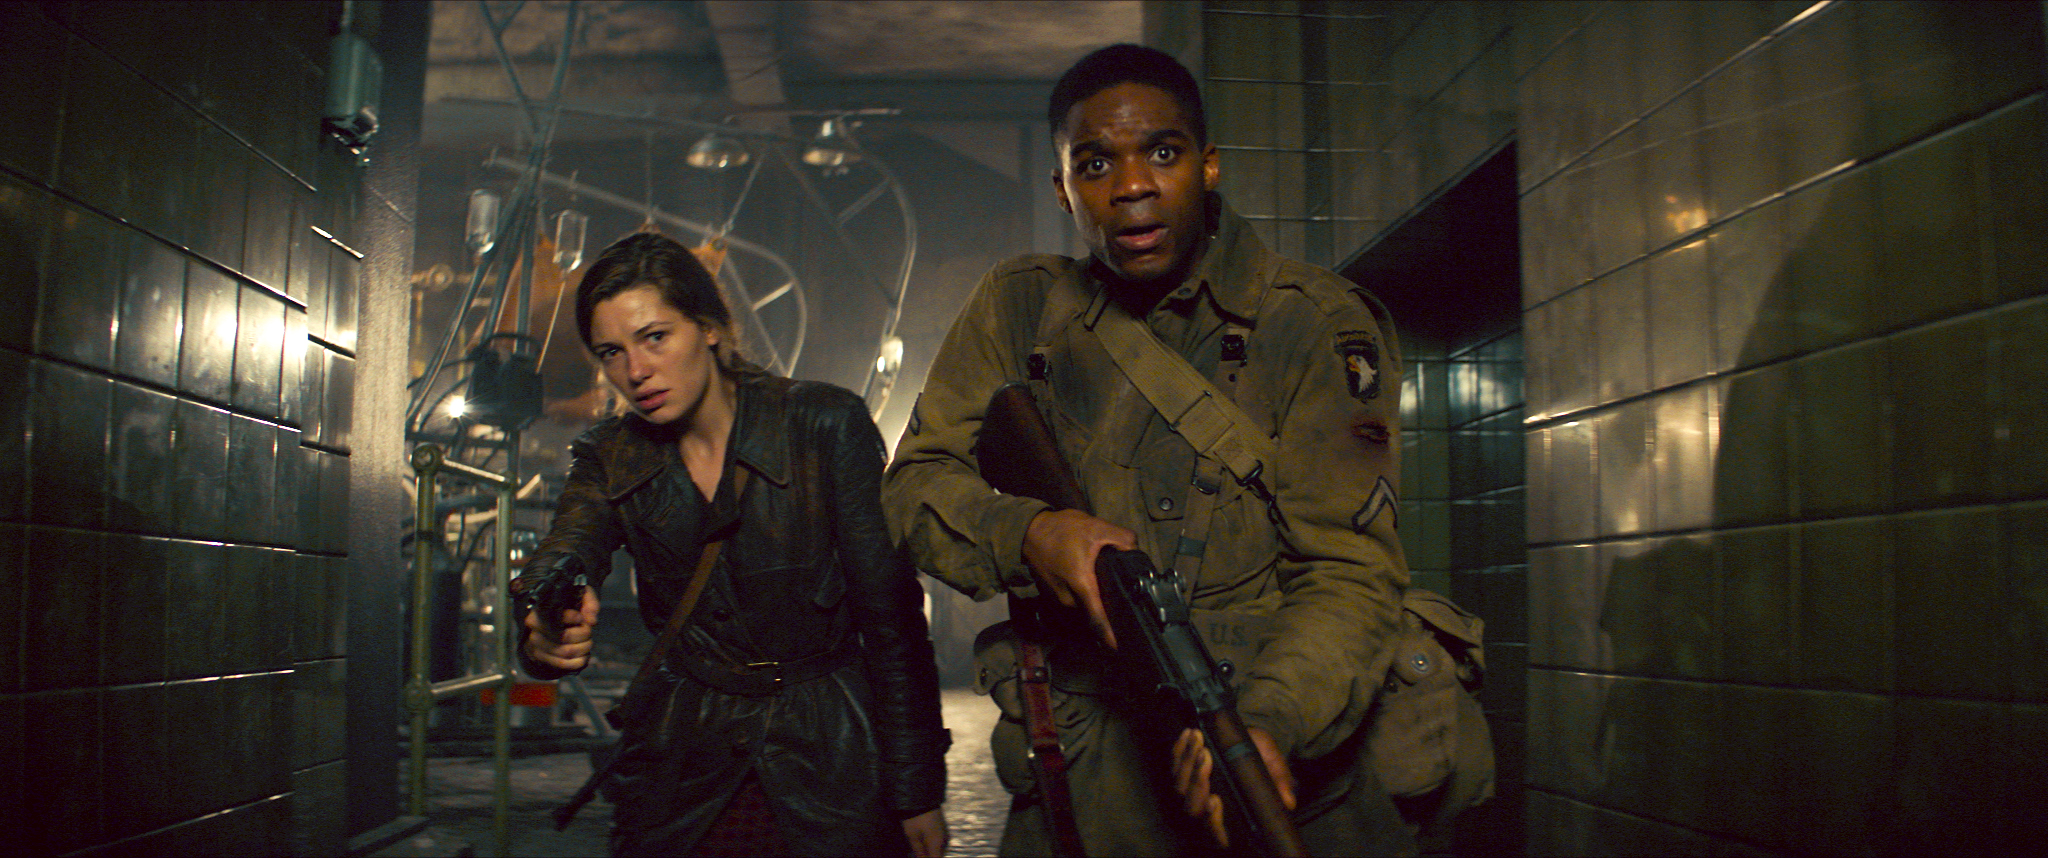 """American paratrooper Ed Boyce (Jovan Apero, right) and Frenchwoman Chloe (Mathilde Ollivier) get inside a secret German base on the cusp of D-Day, and discover something truly monstrous, in the World War II horror-thriller """"Overlord."""" (Photo courtesy Paramount Pictures)"""